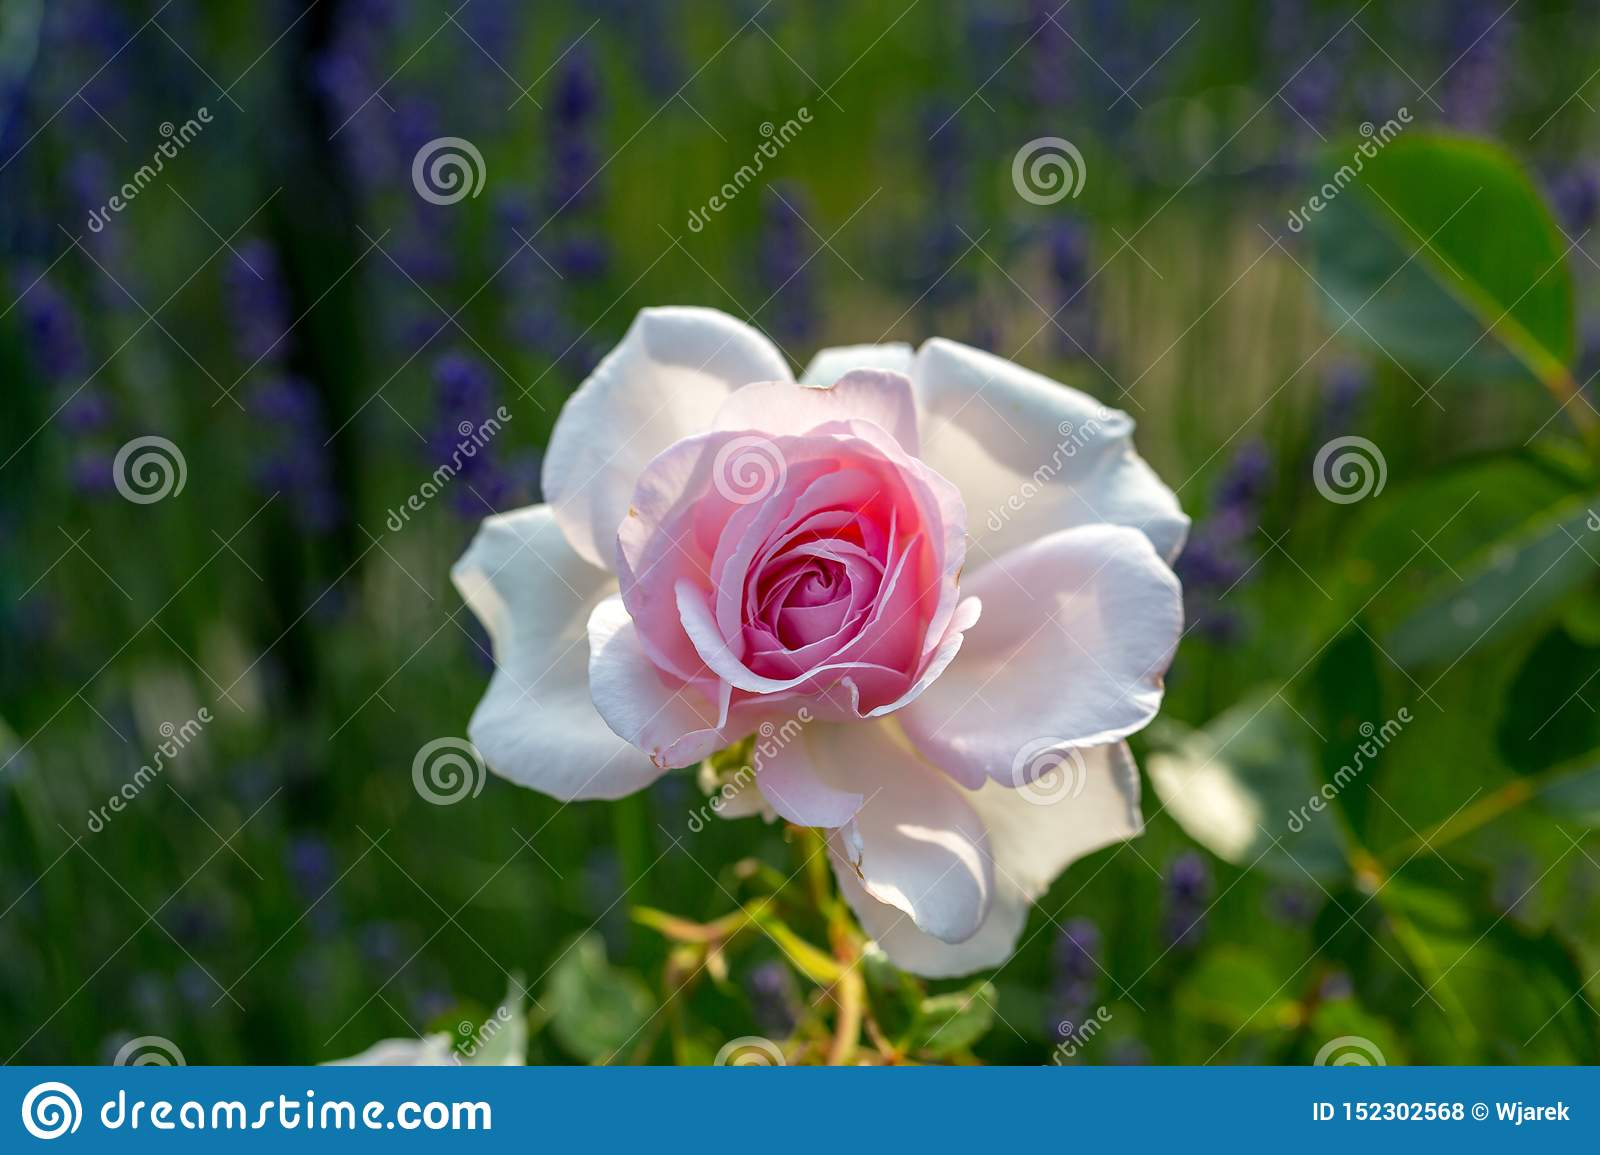 Pink and white rose flower on the branch in the garden.